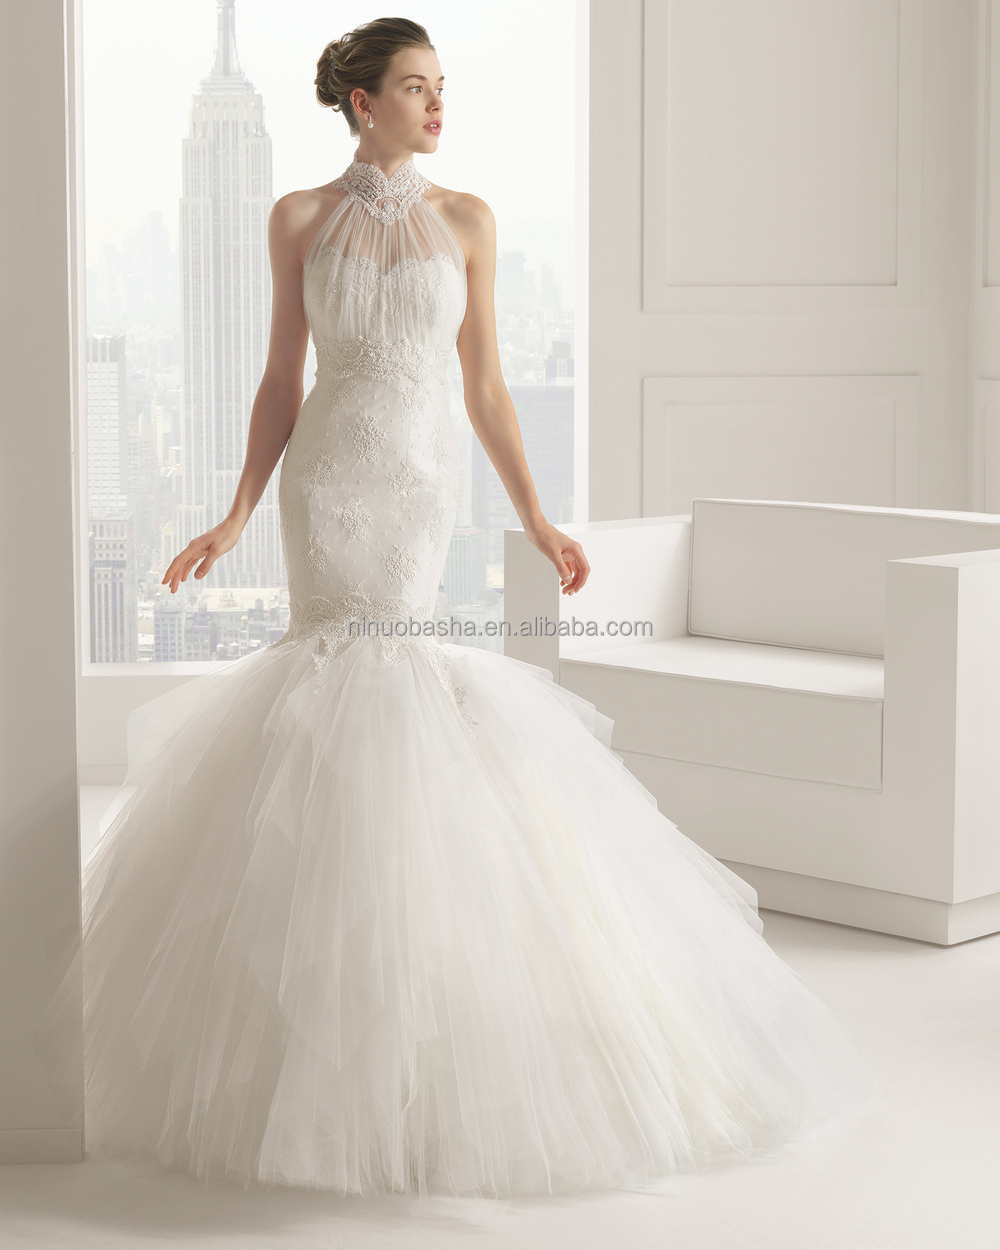 Wholesale Sexy Bottom Tiered Tulle Skirt Mermaid Wedding